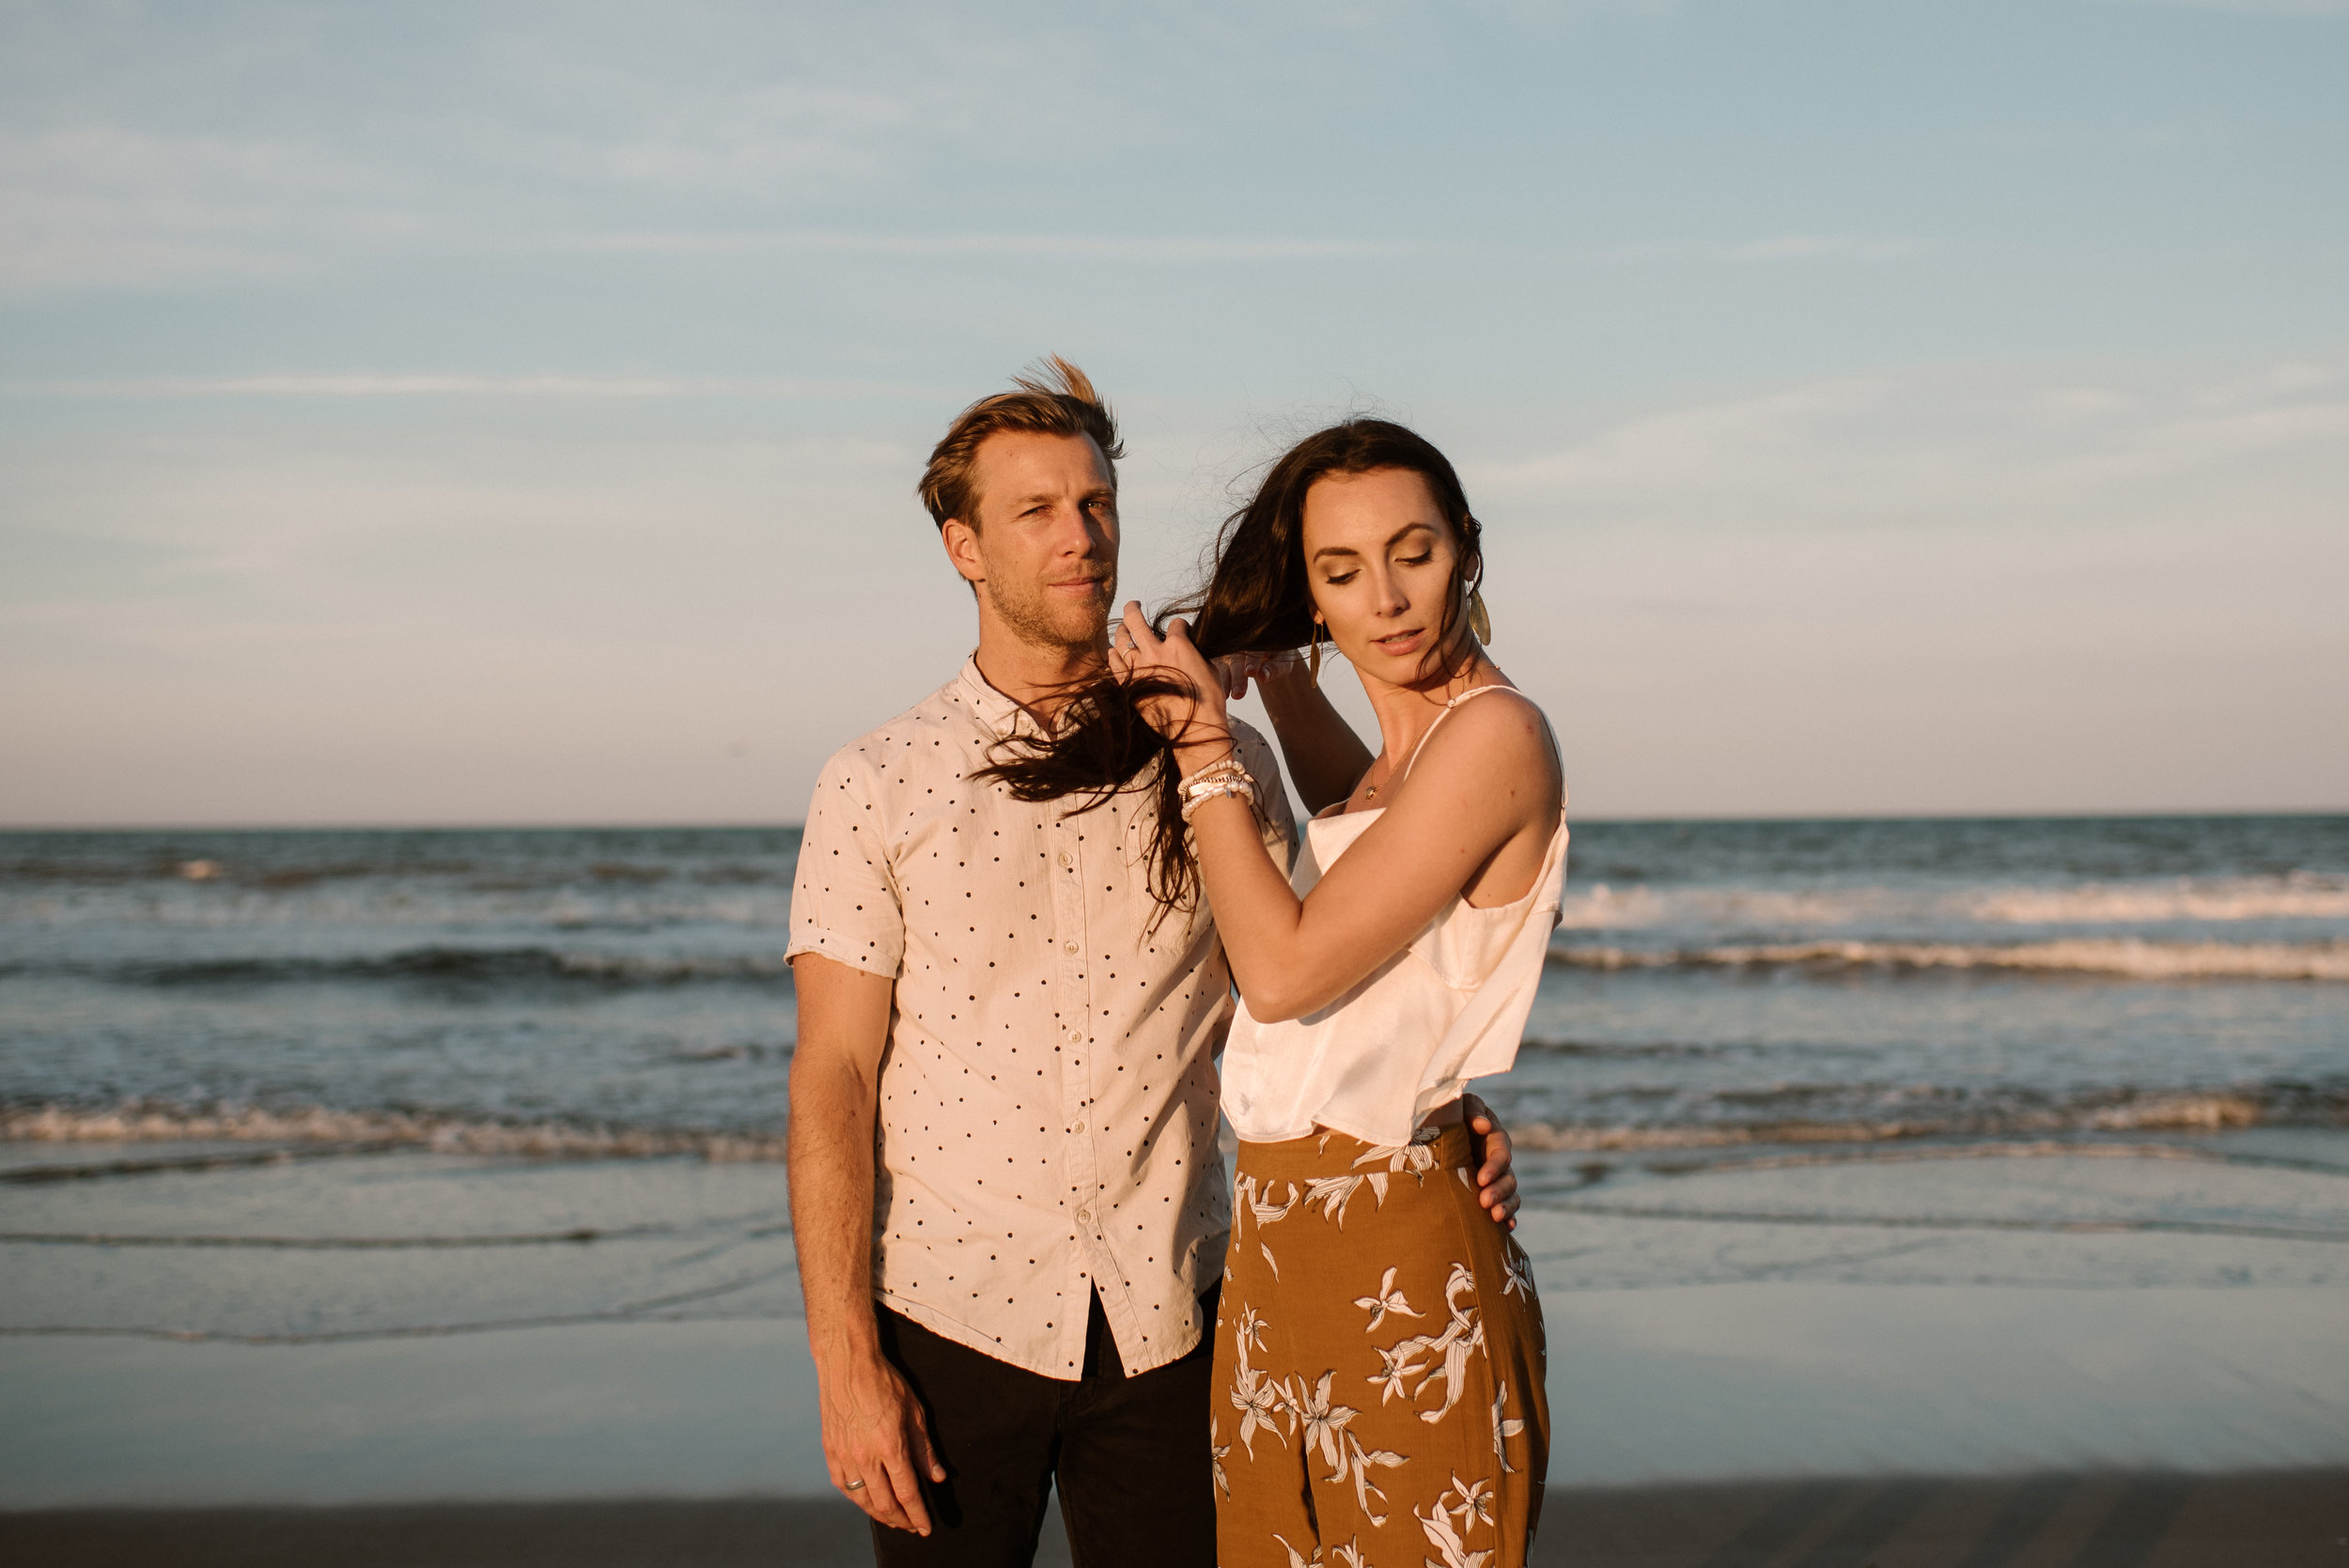 atlantic-beach-engagement-photos-heather-and-cody-100.jpg